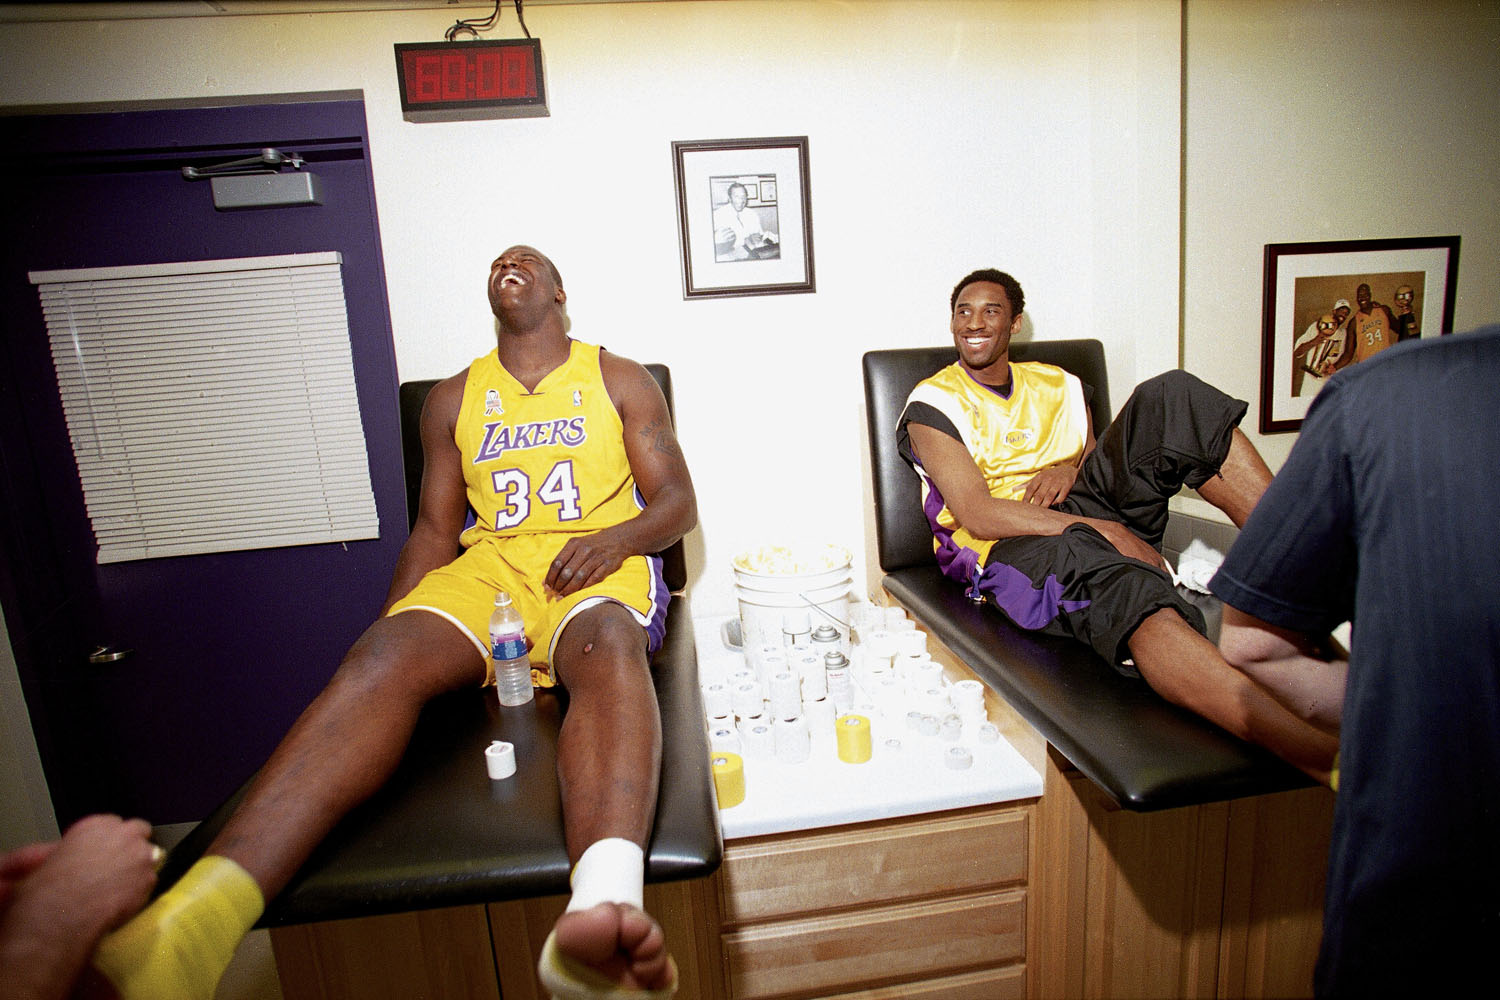 Shaquille O'Neal and Kobe Bryant with trainer before a home game in Los Angeles in 2002.